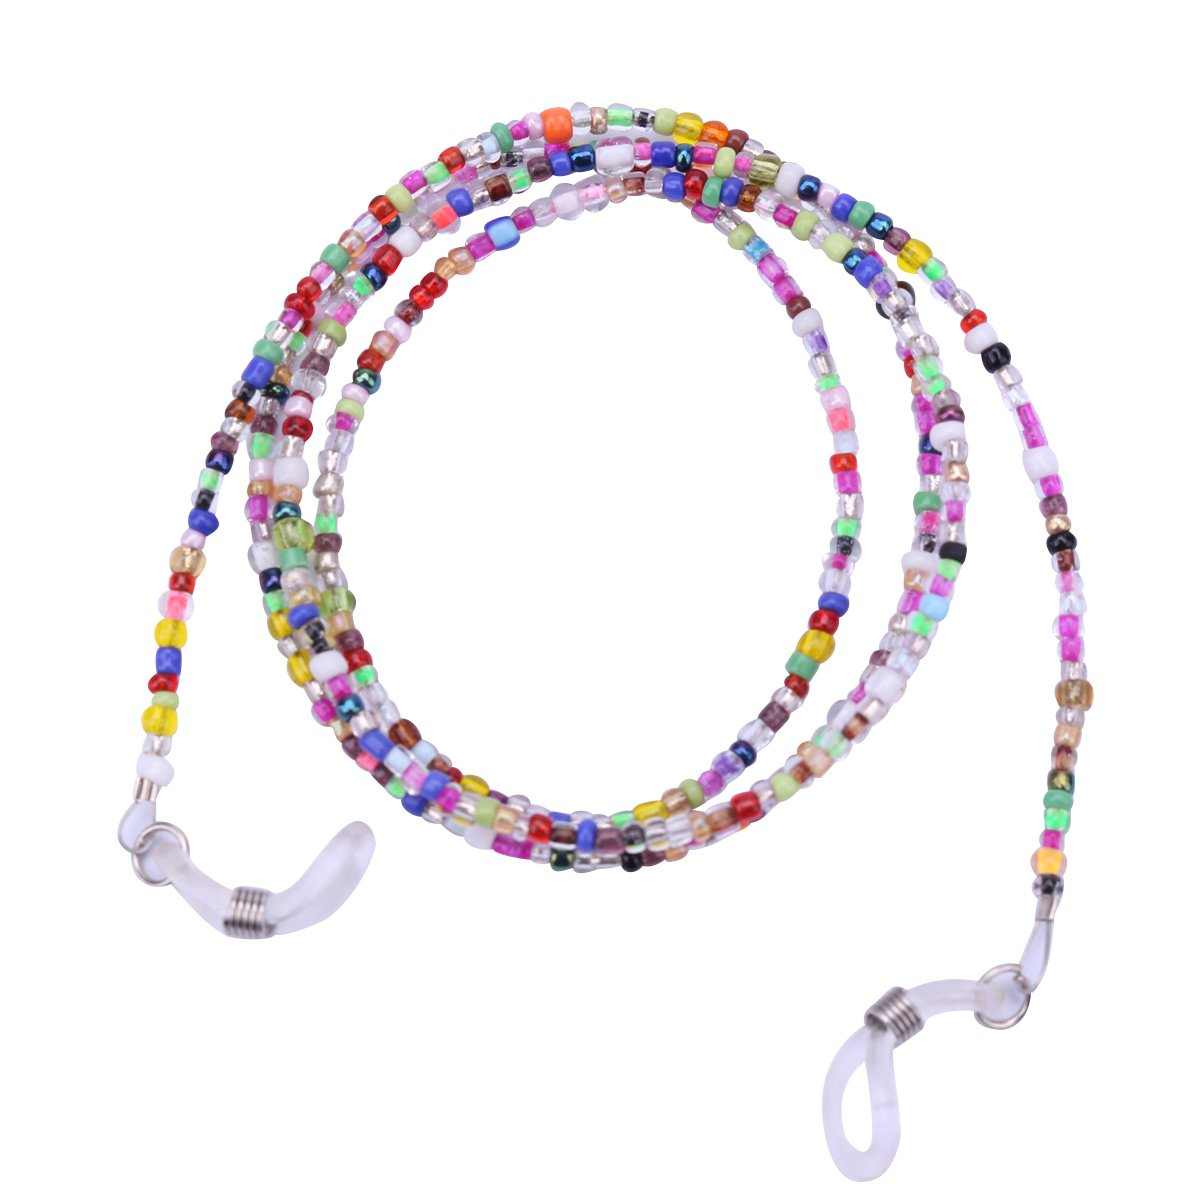 TiaoBug Eyeglass Chain Beaded Glasses Cord Sunglasses Lanyard Retainer Strap Multicolor One Size